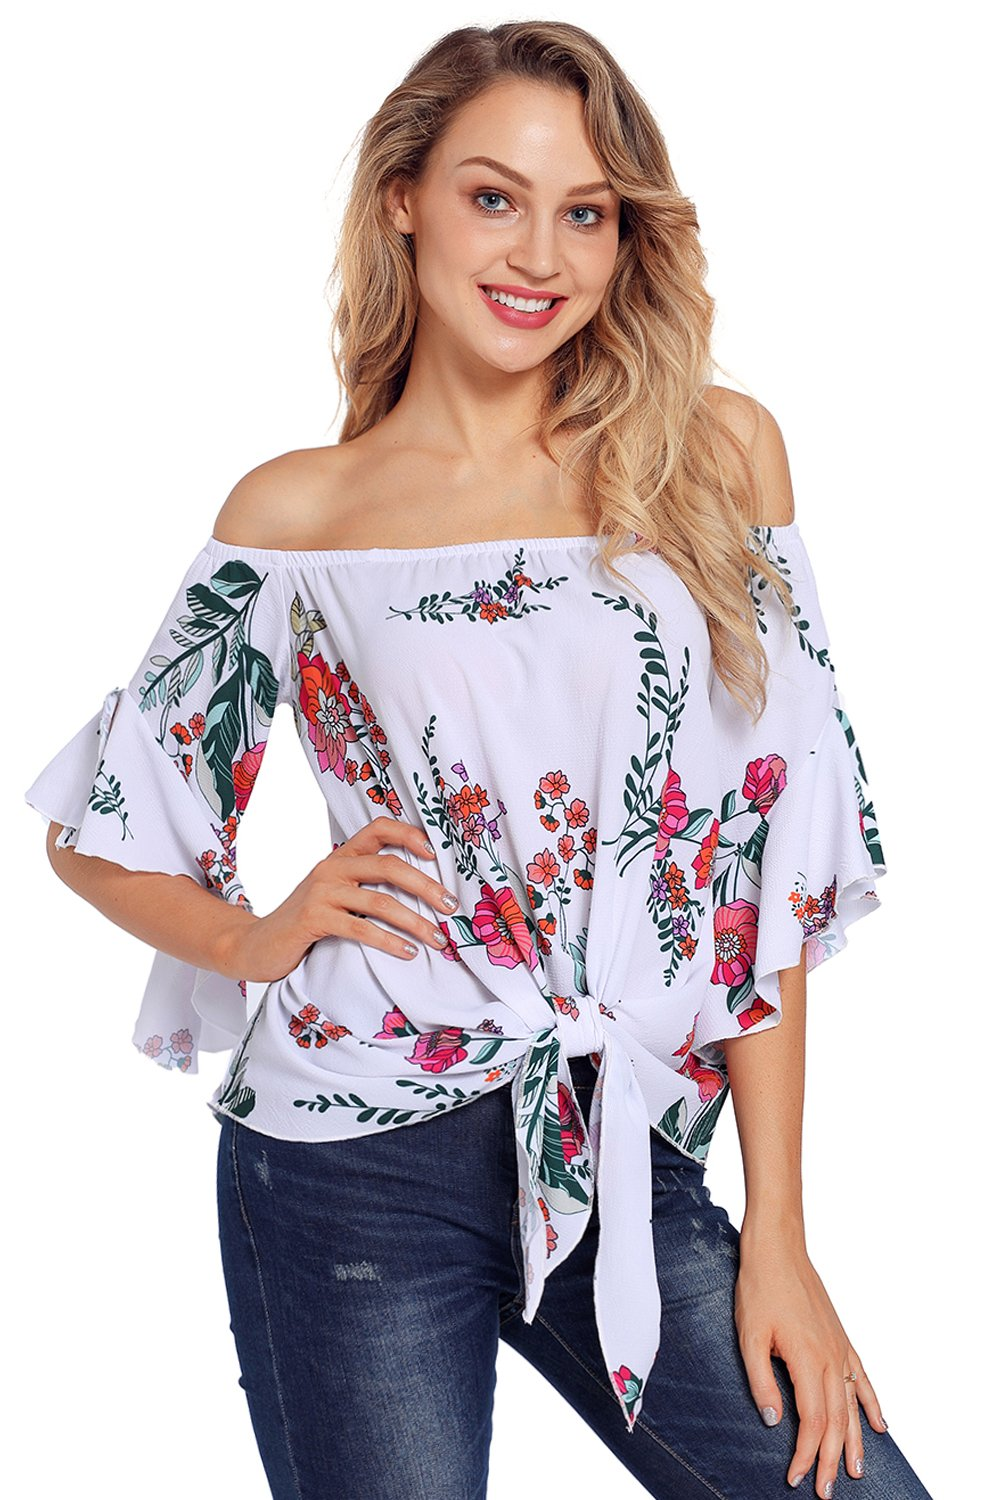 95fd74268abca White Floral Tie Front Off The Shoulder Top